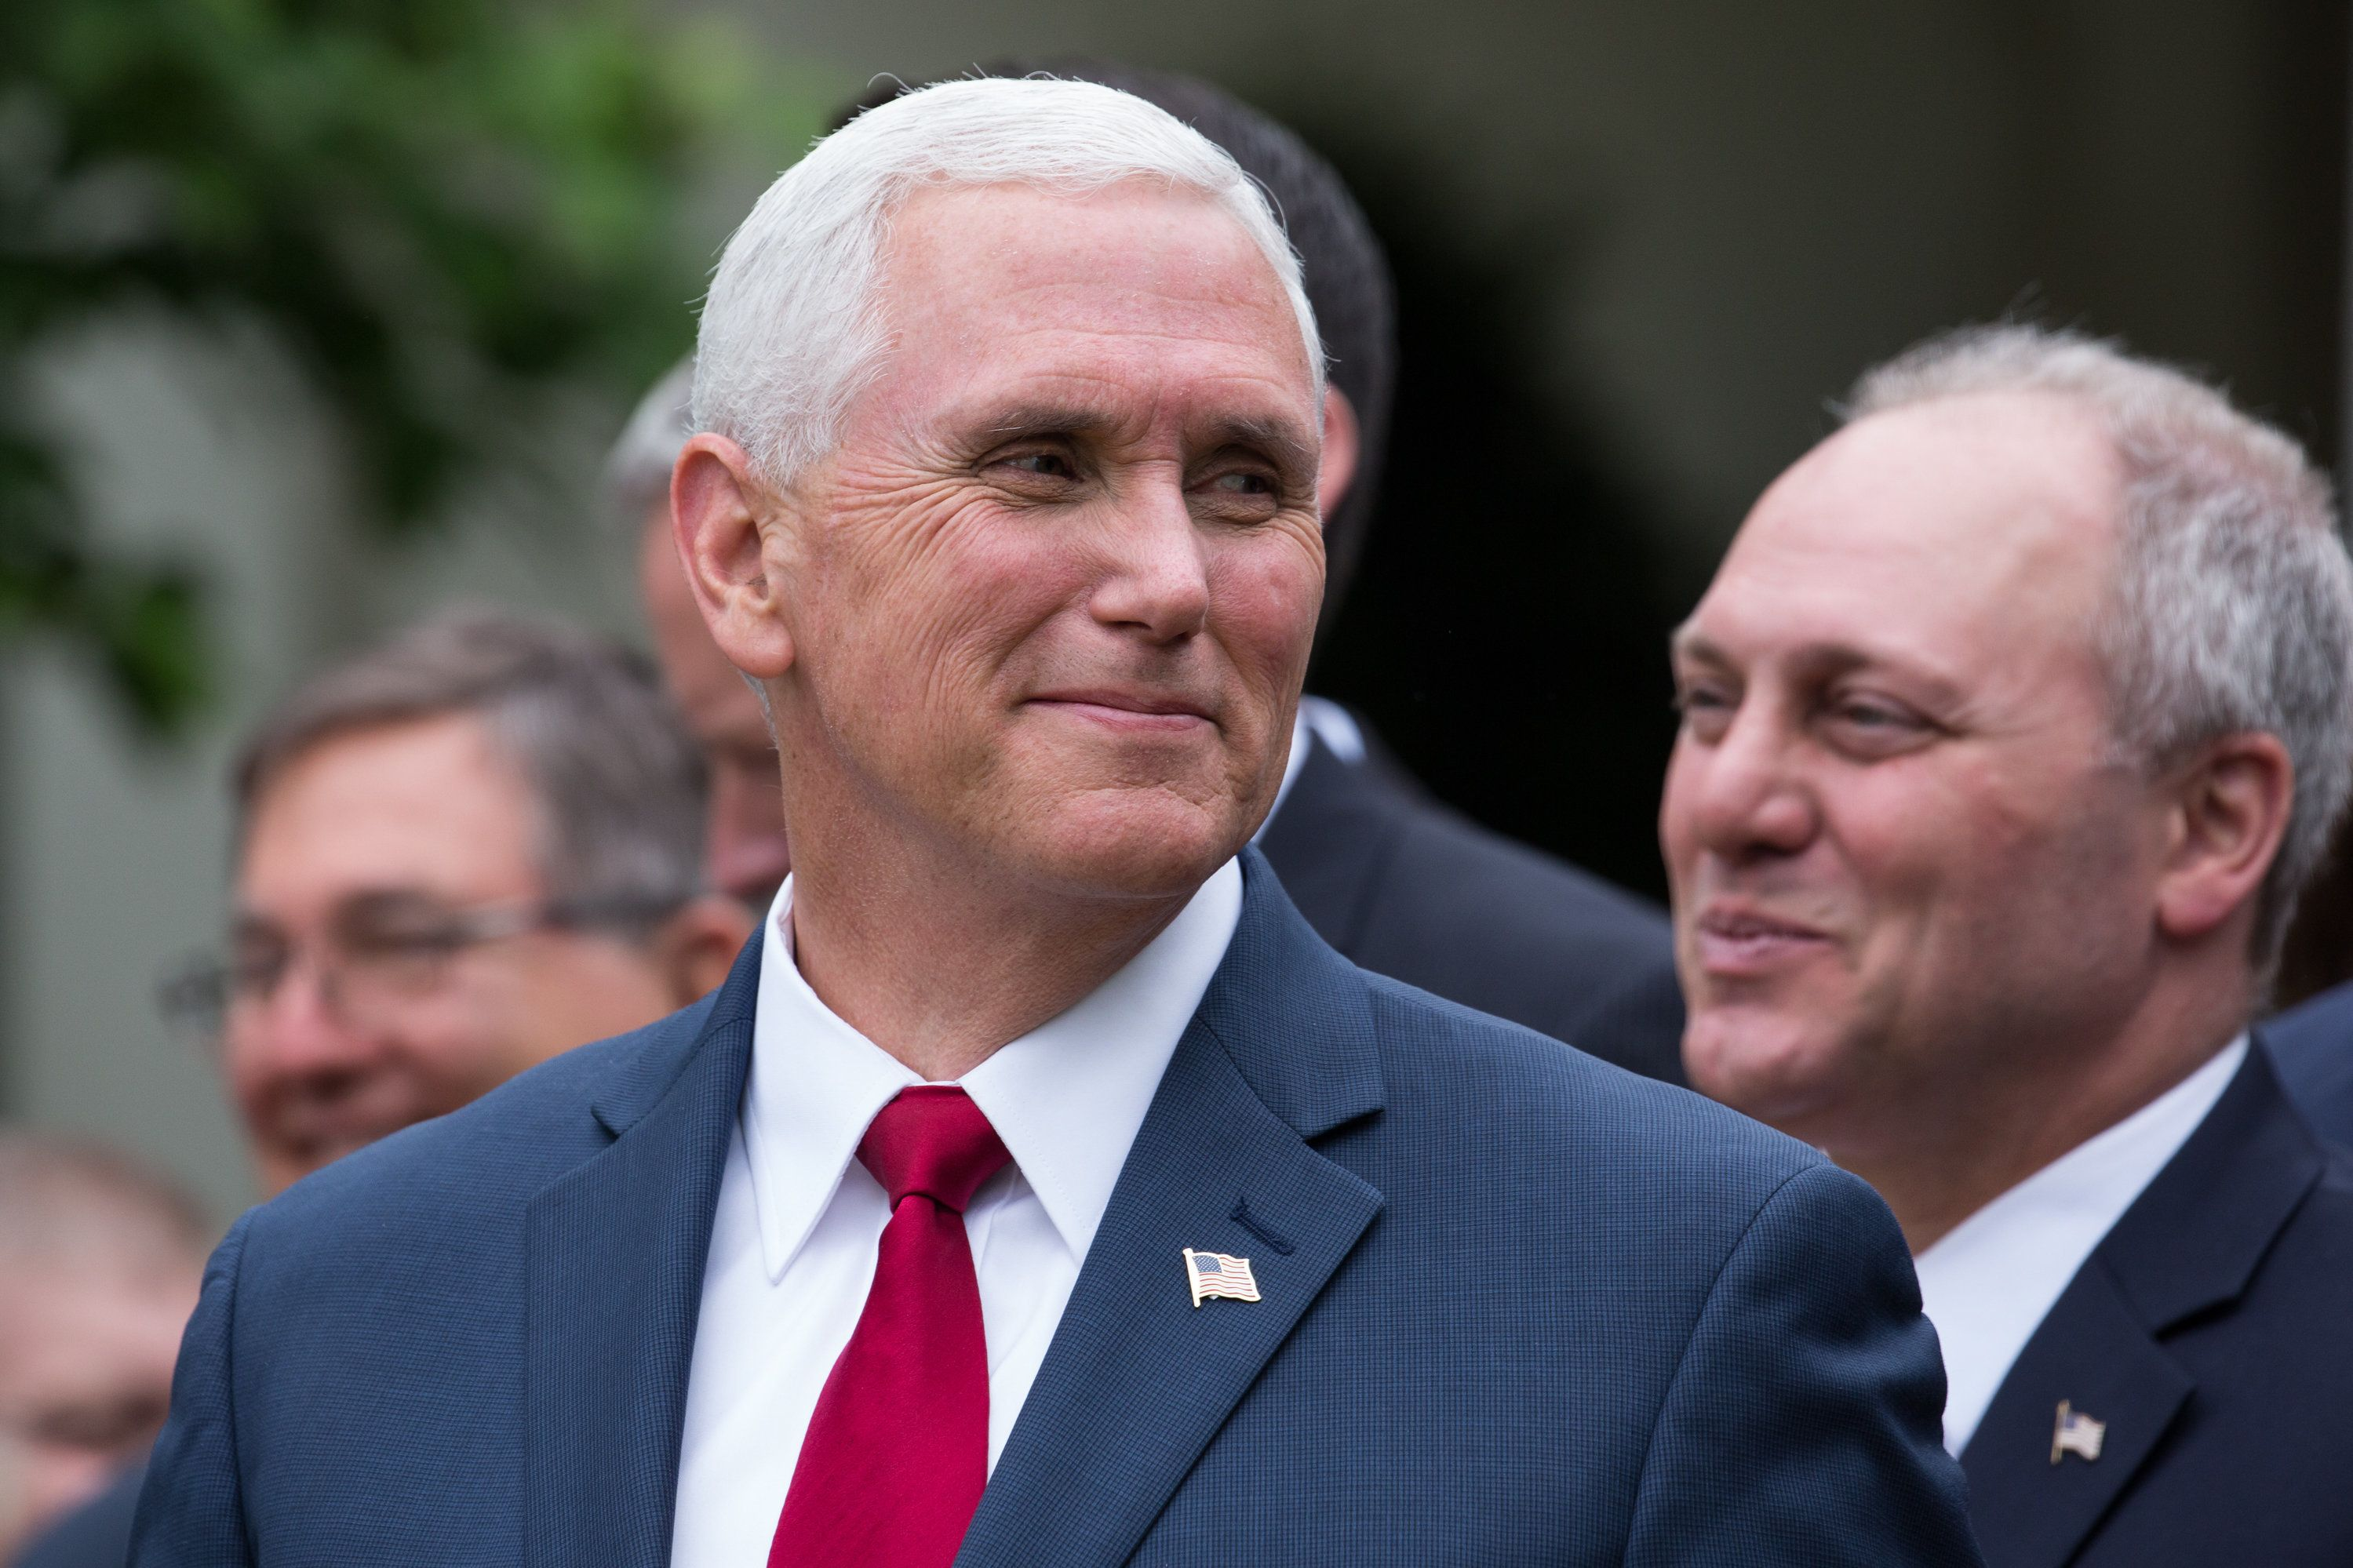 VP Mike Pence laughs during a press conference with members of the GOP, on the passage of legislation to roll back the Affordable Care Act, in the Rose Garden of the White House, On Thursday, May 4, 2017. (Photo by Cheriss May/NurPhoto via Getty Images)